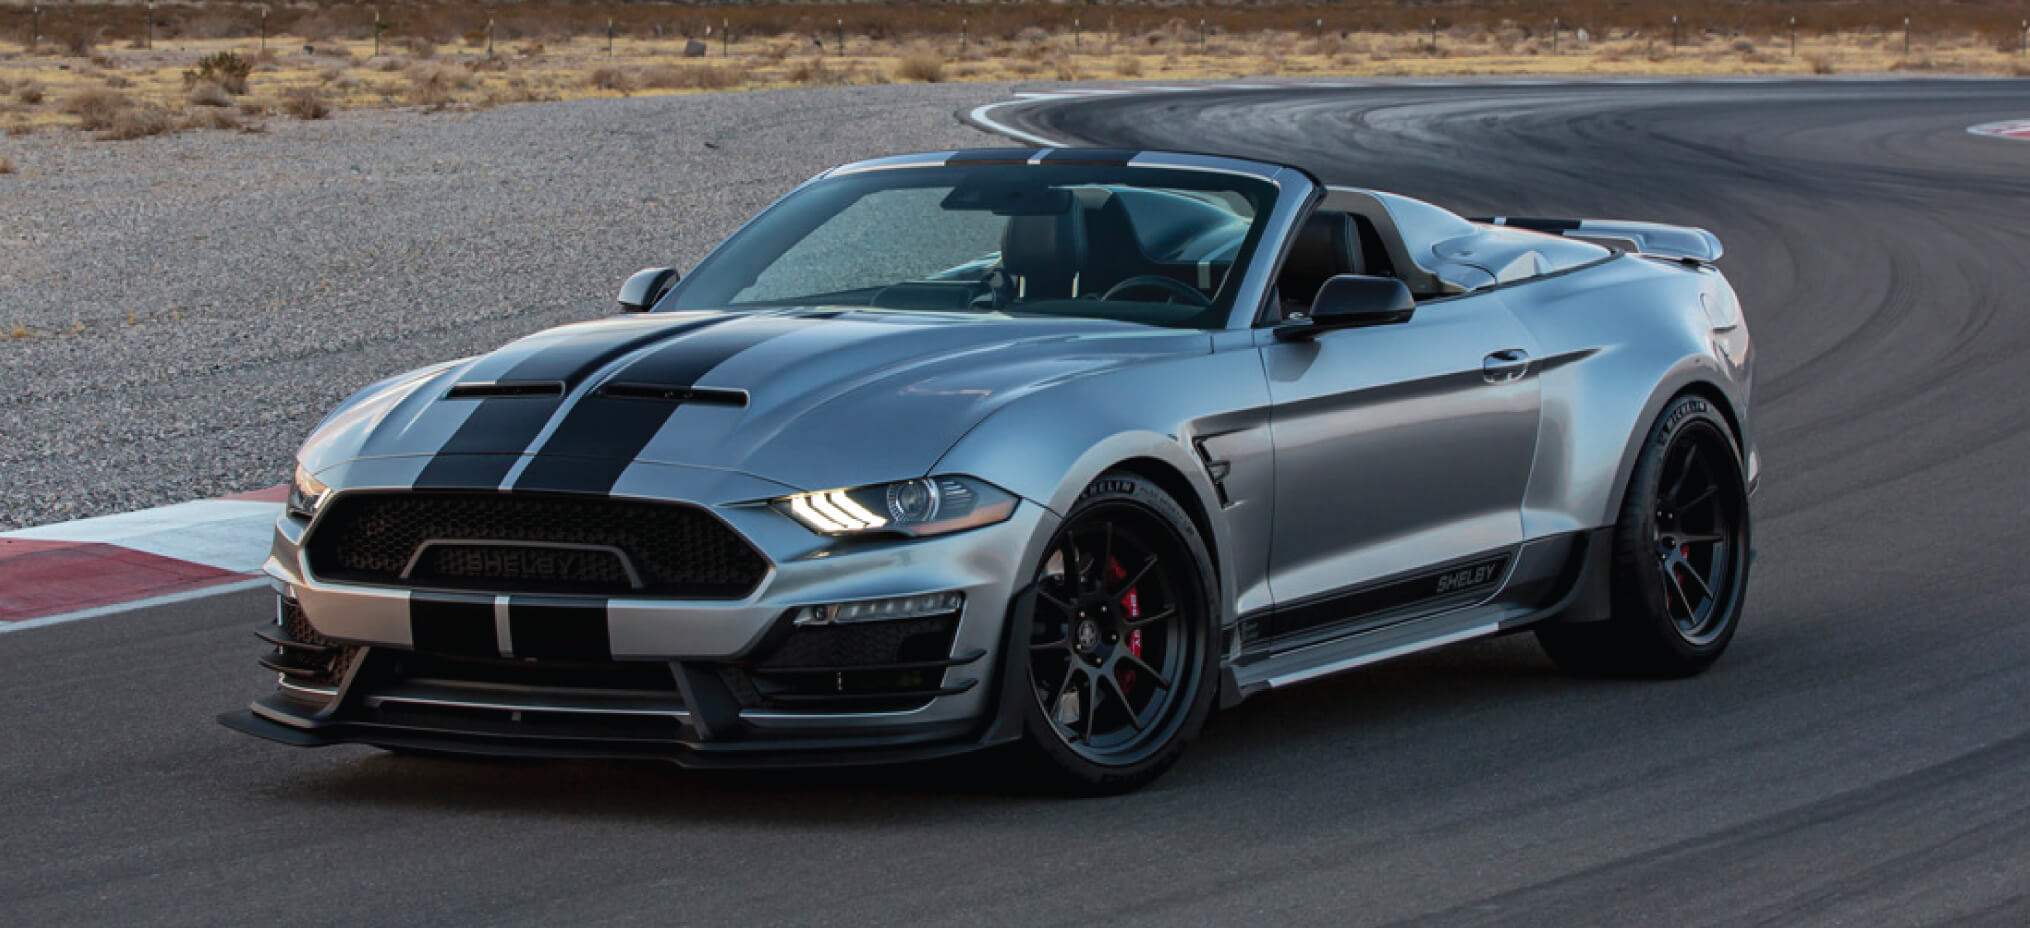 Bayfield Ford Shelby Super Snake Bayfield Ford Barrie Ontario